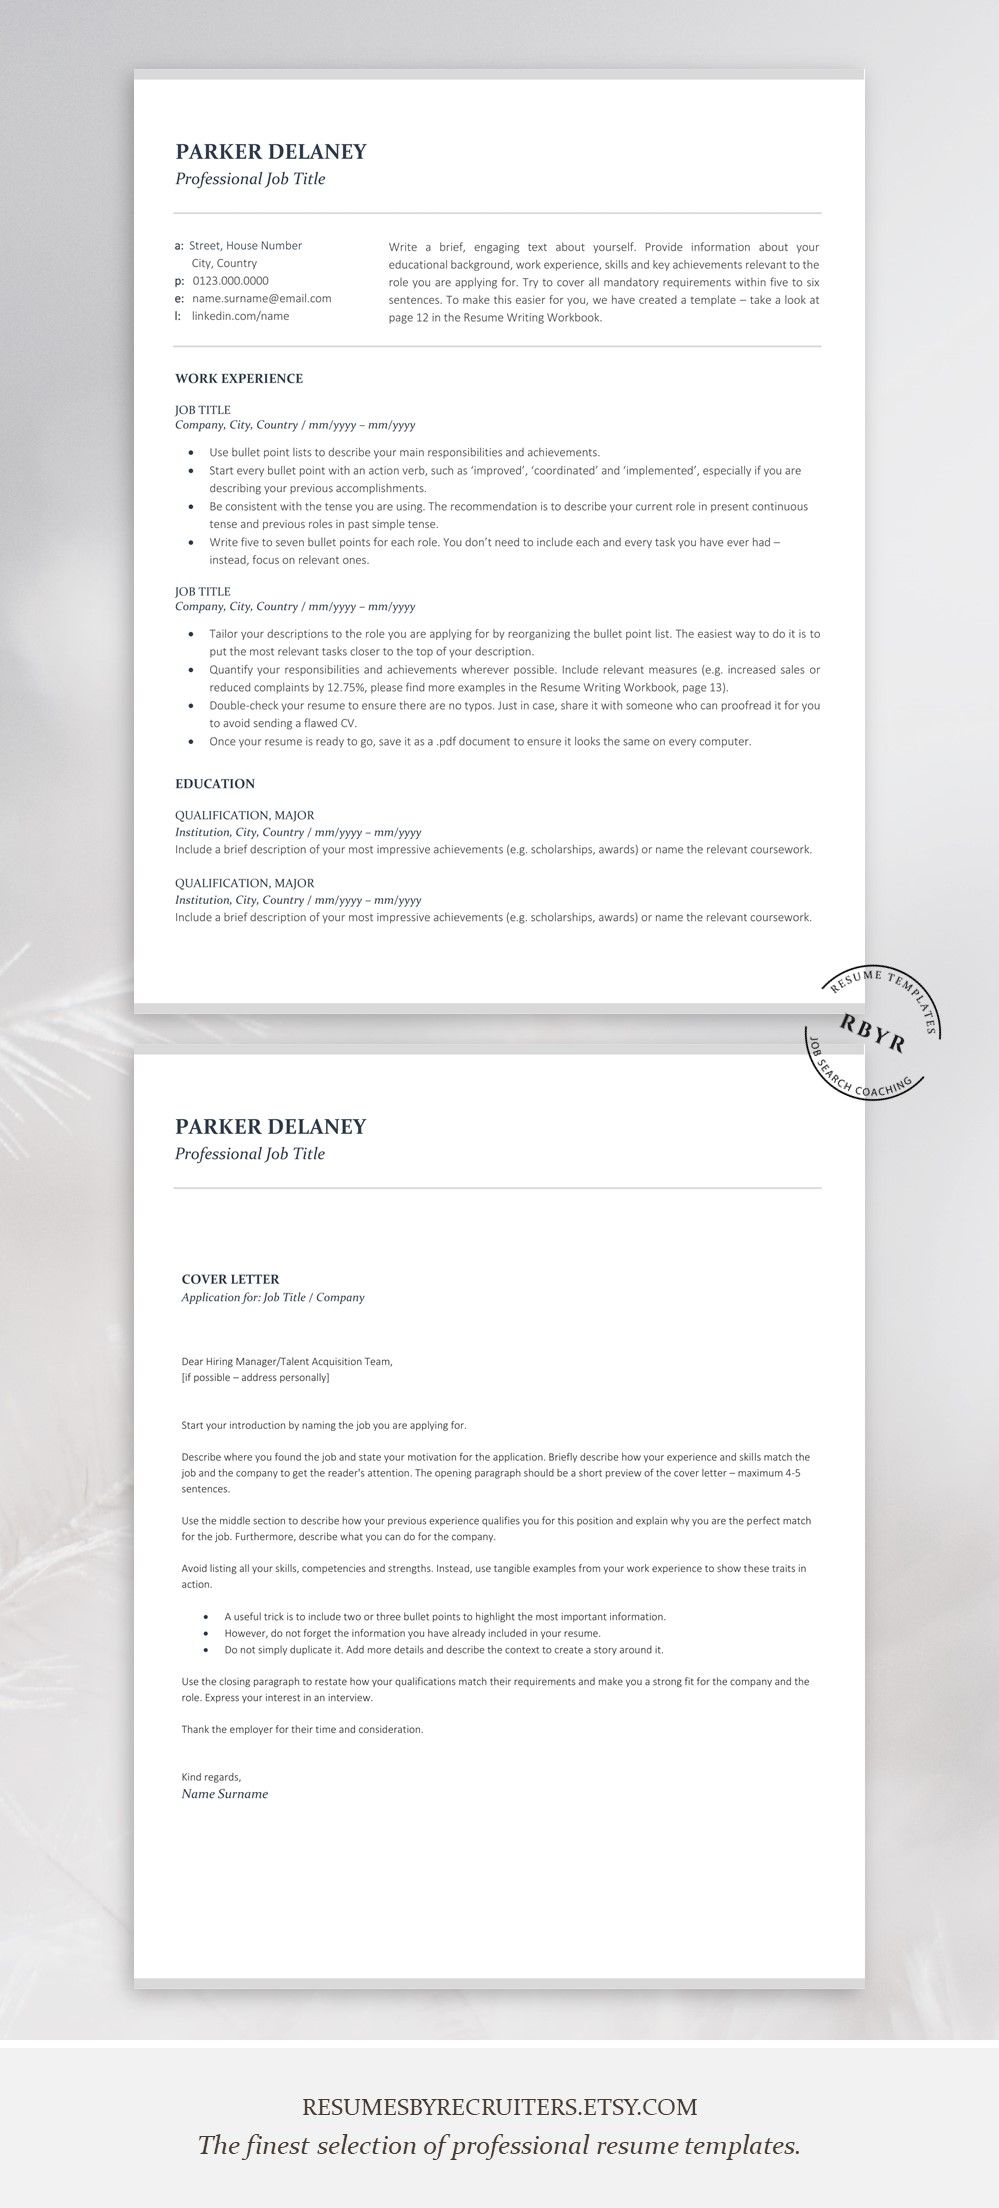 Professional resume template for finance instant download